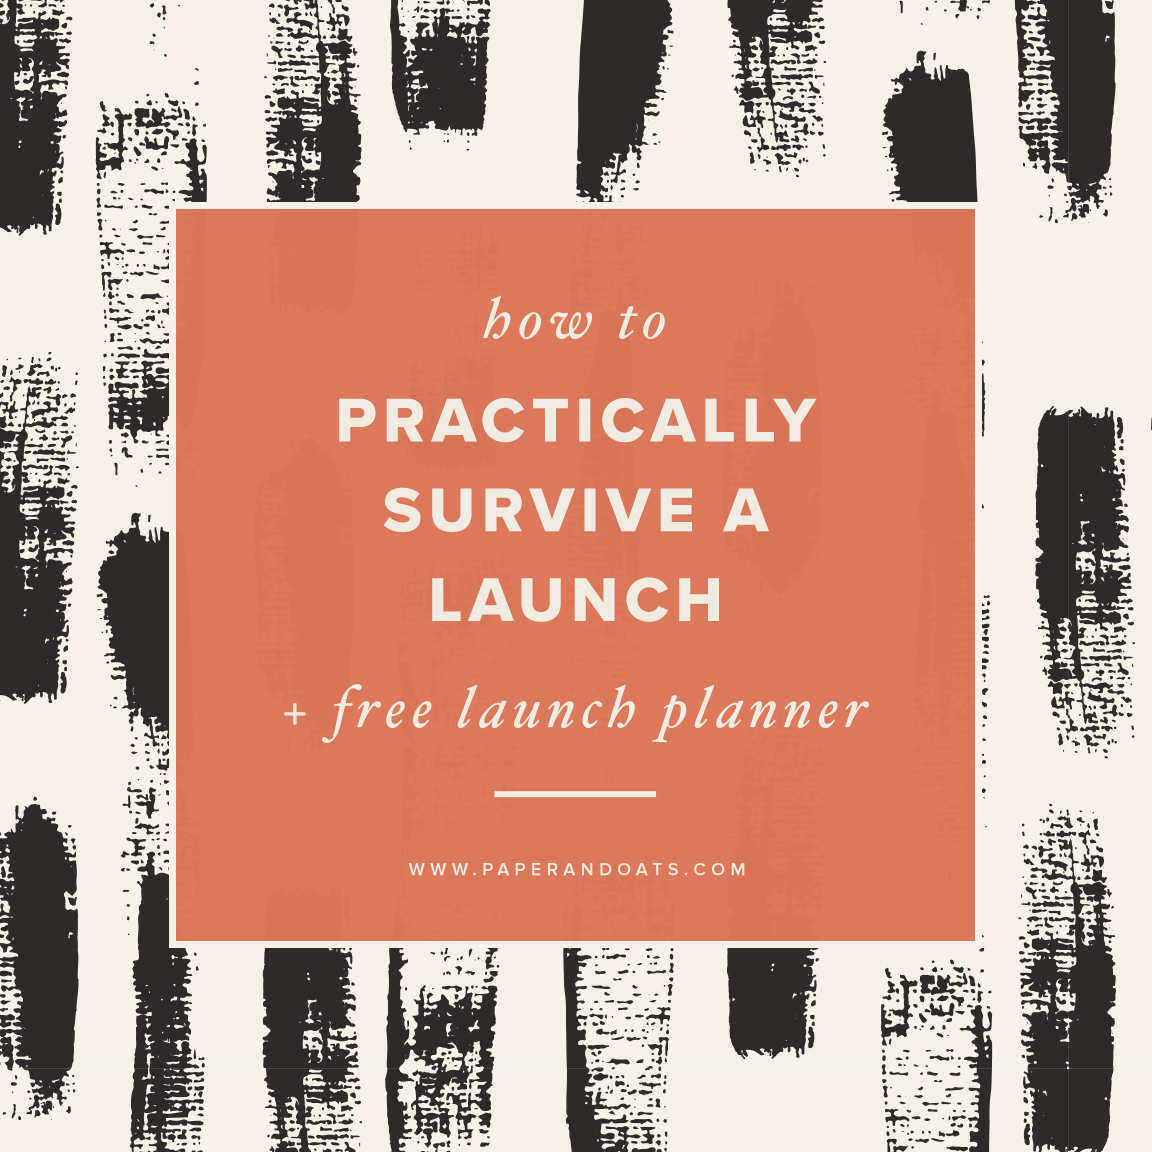 How to practically survive a launch (+ free launch planner!) –Paper + Oats